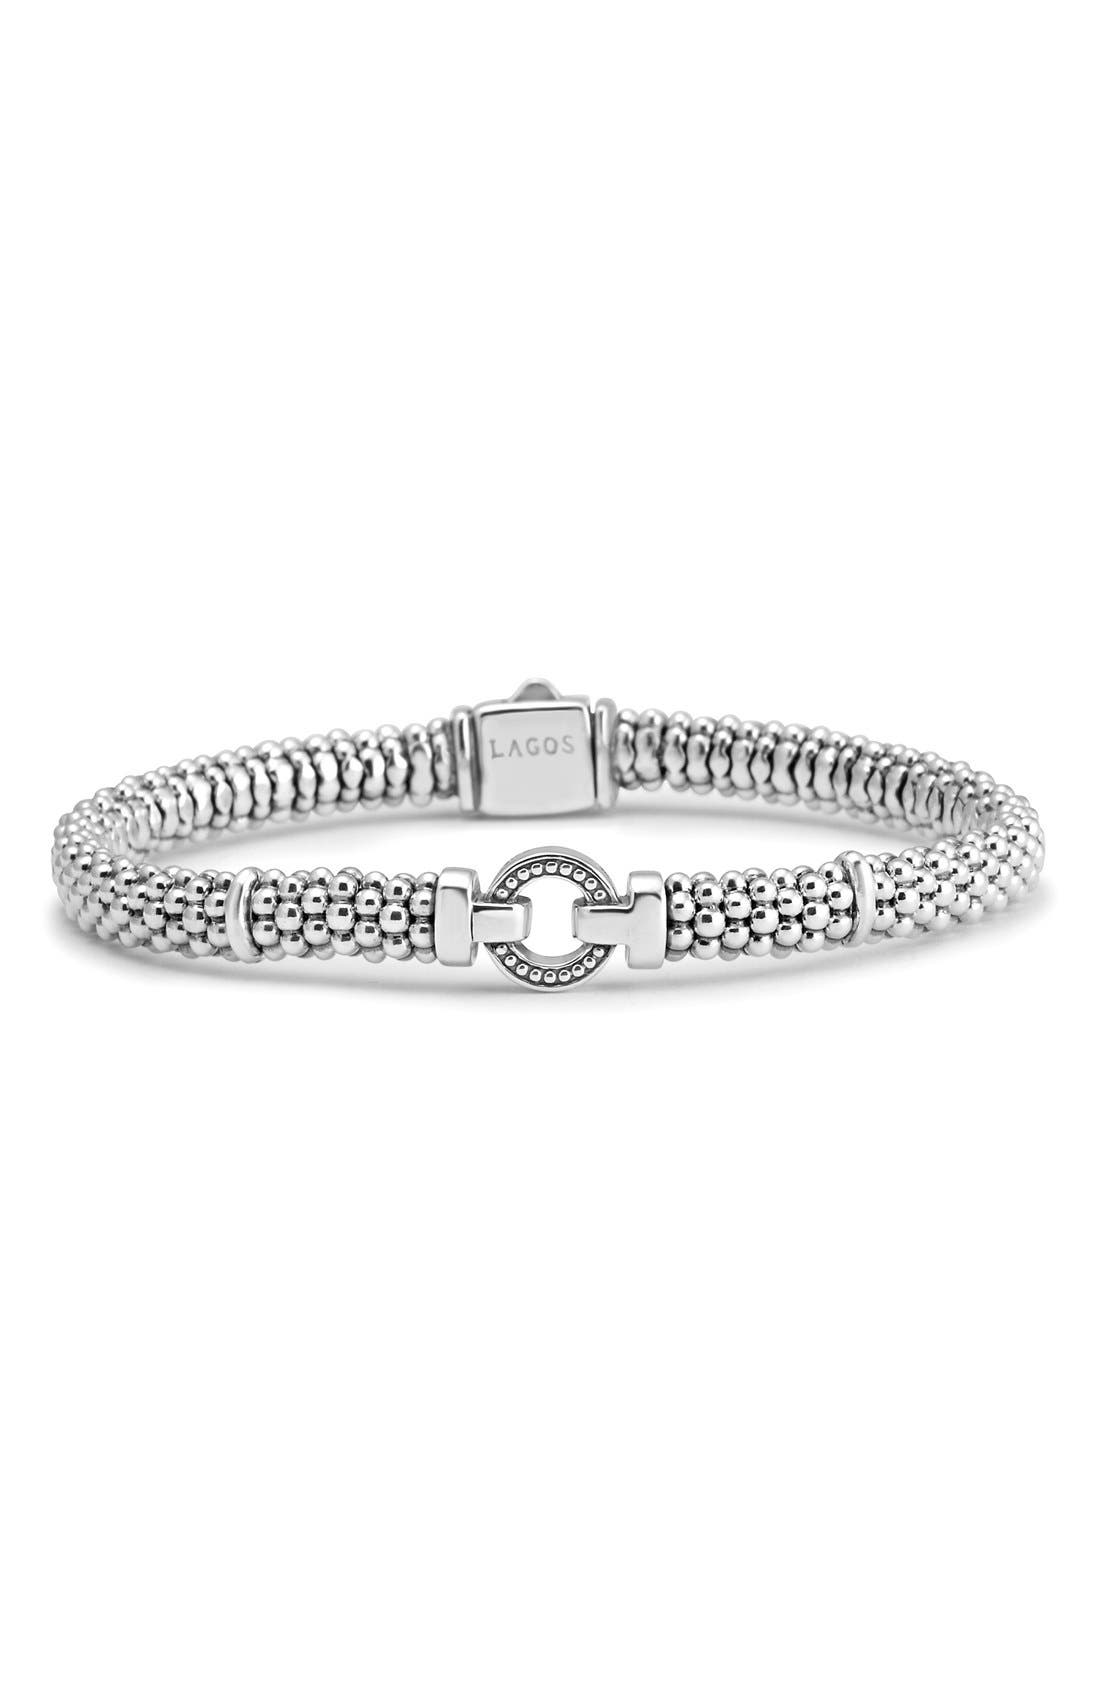 Main Image - LAGOS Enso Boxed Circle Station Caviar Rope Bracelet